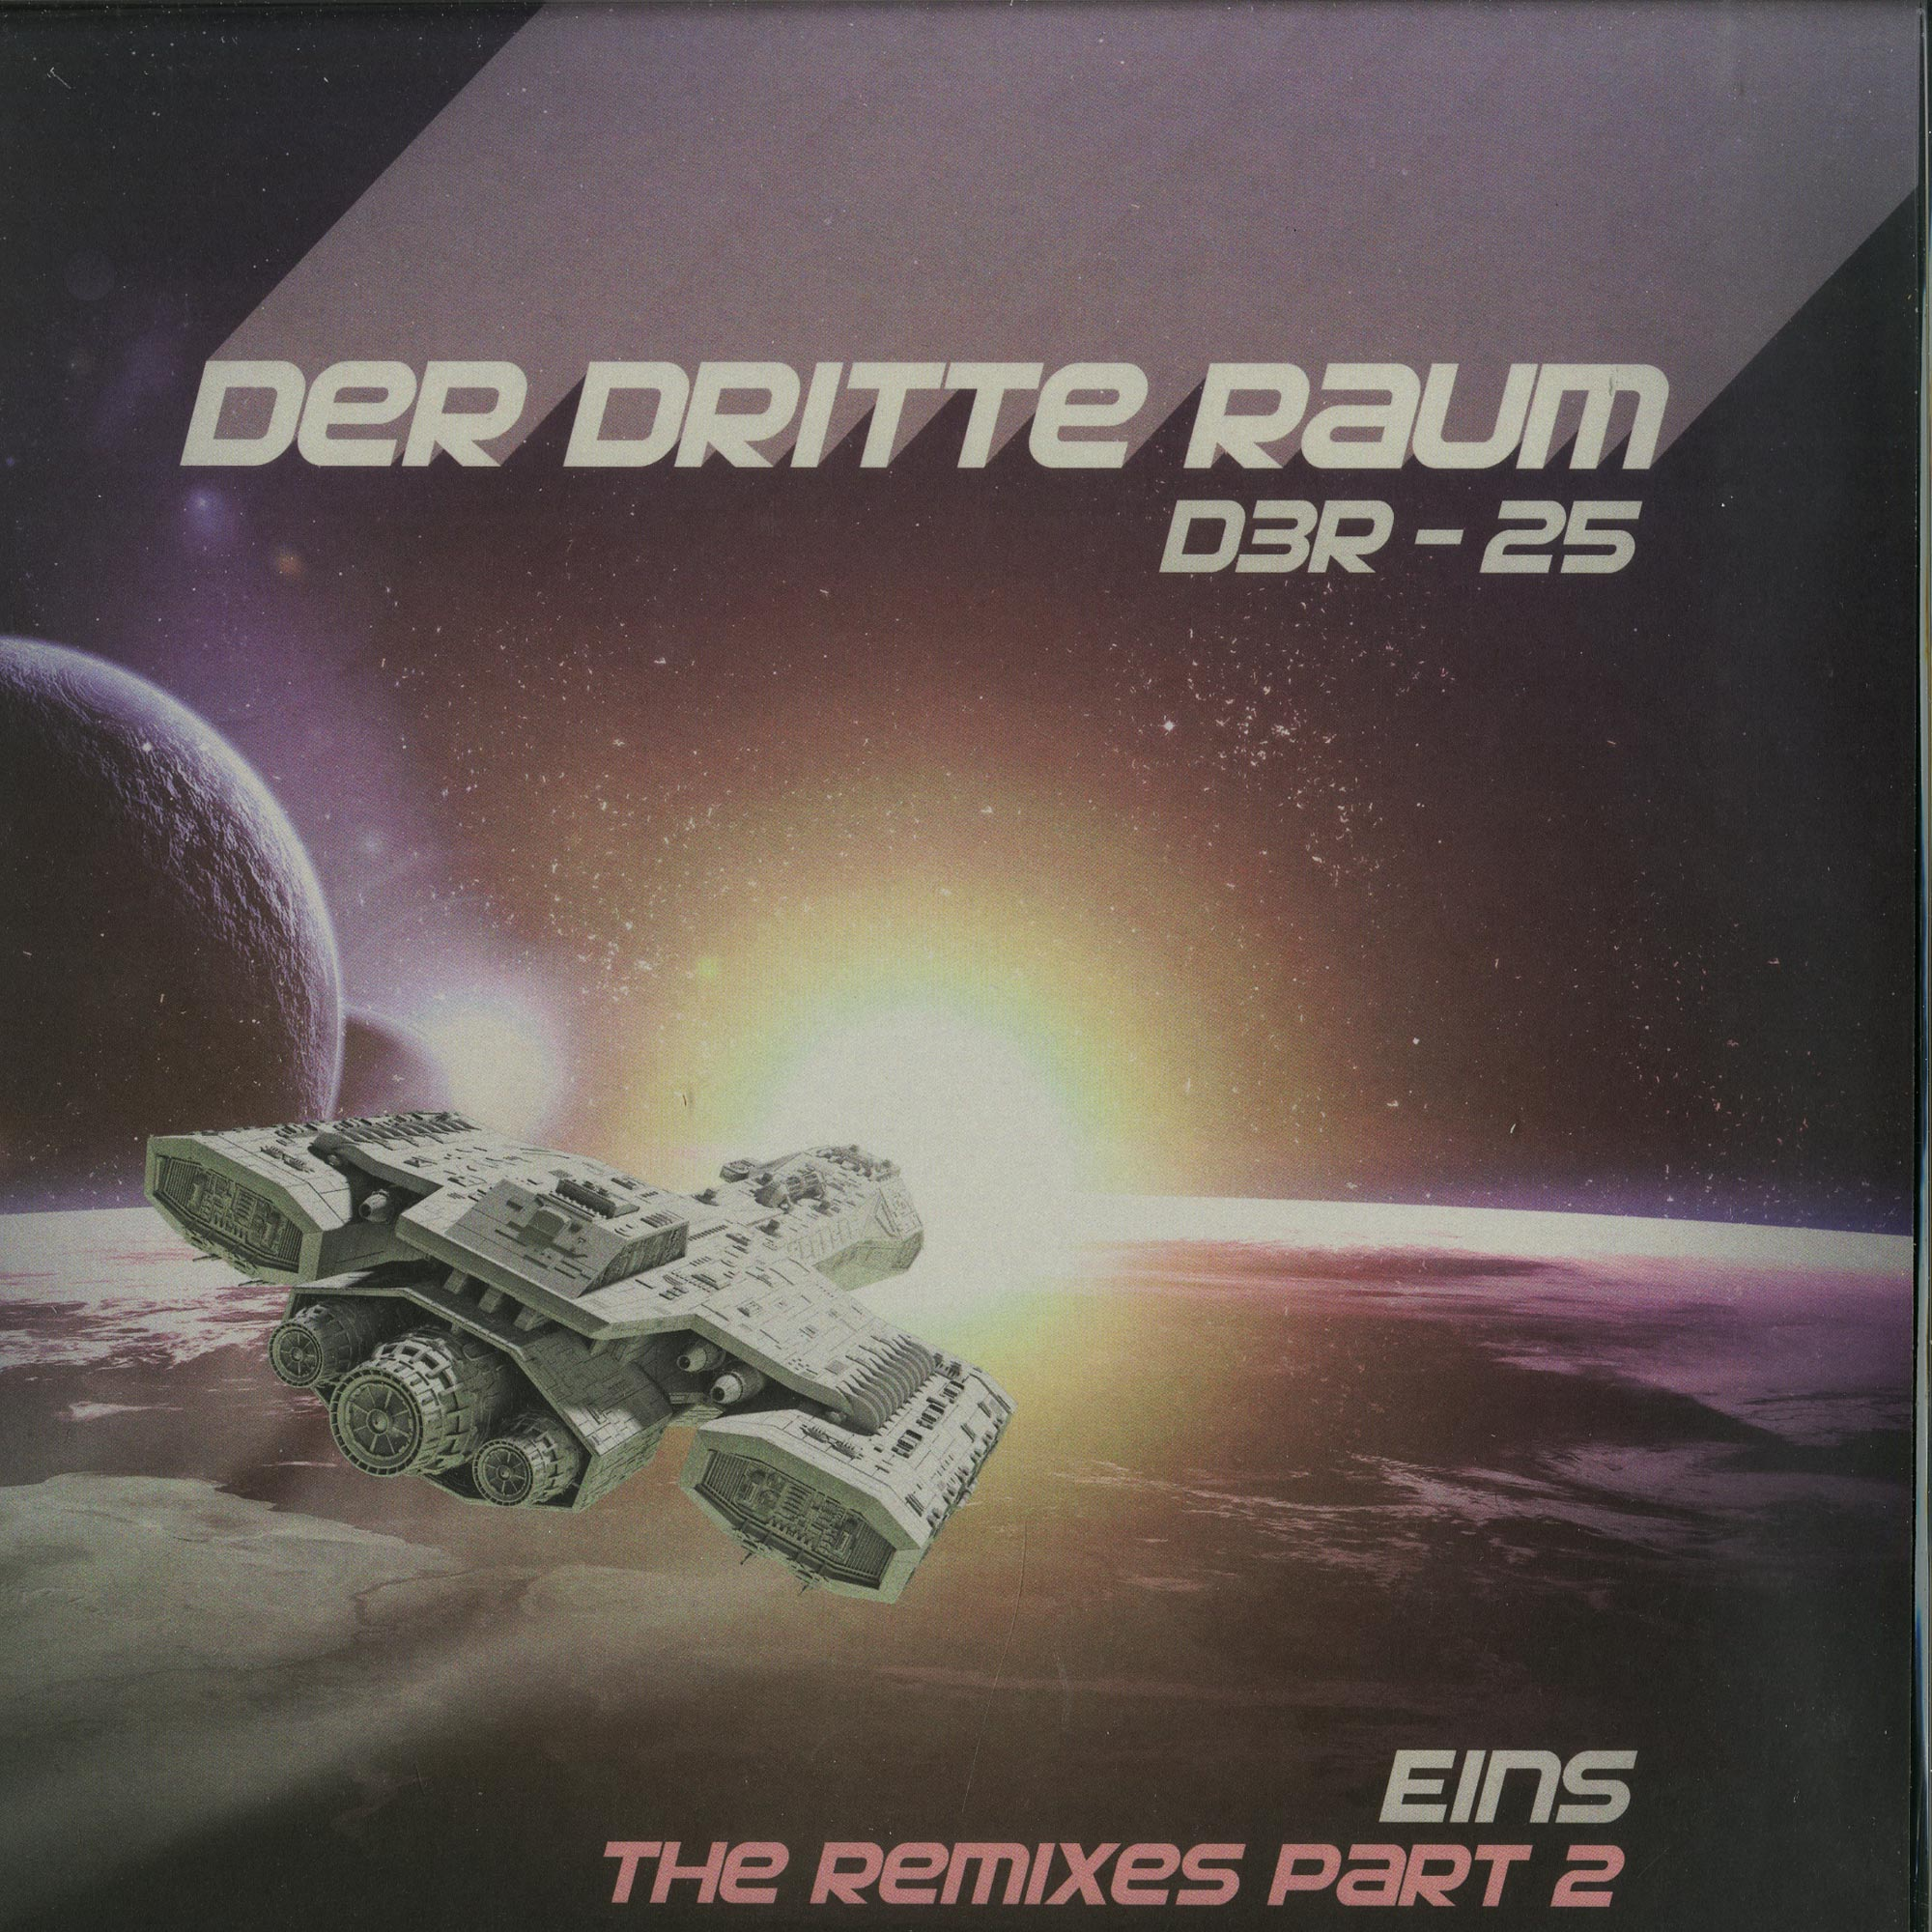 Der Dritte Raum - THE REMIXES PART 2